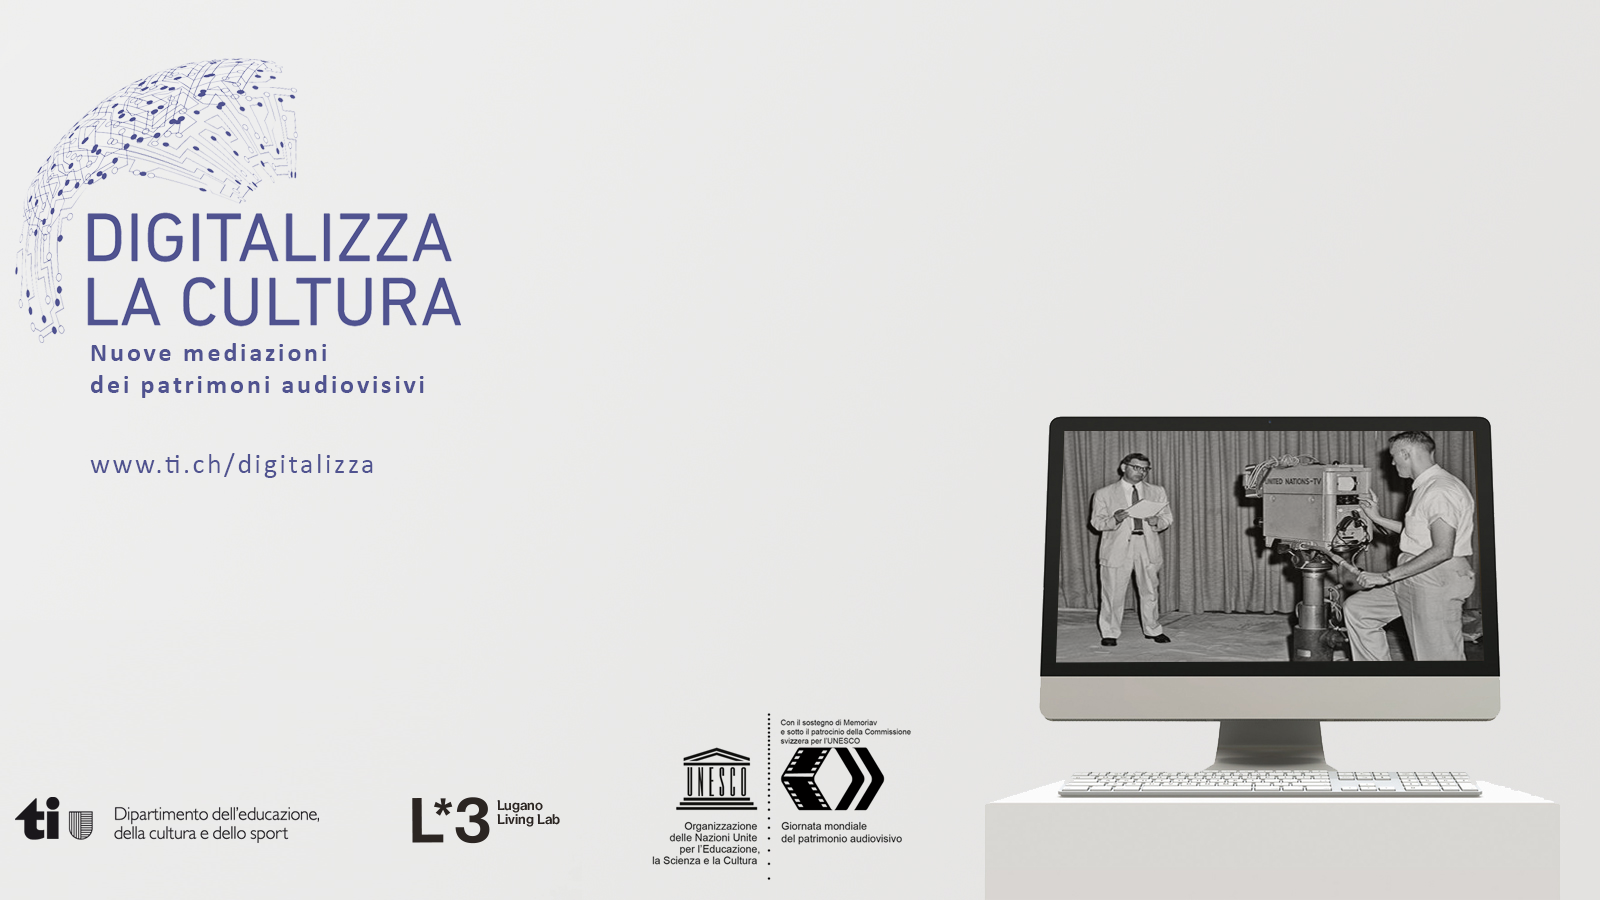 Digitalizza la cultura